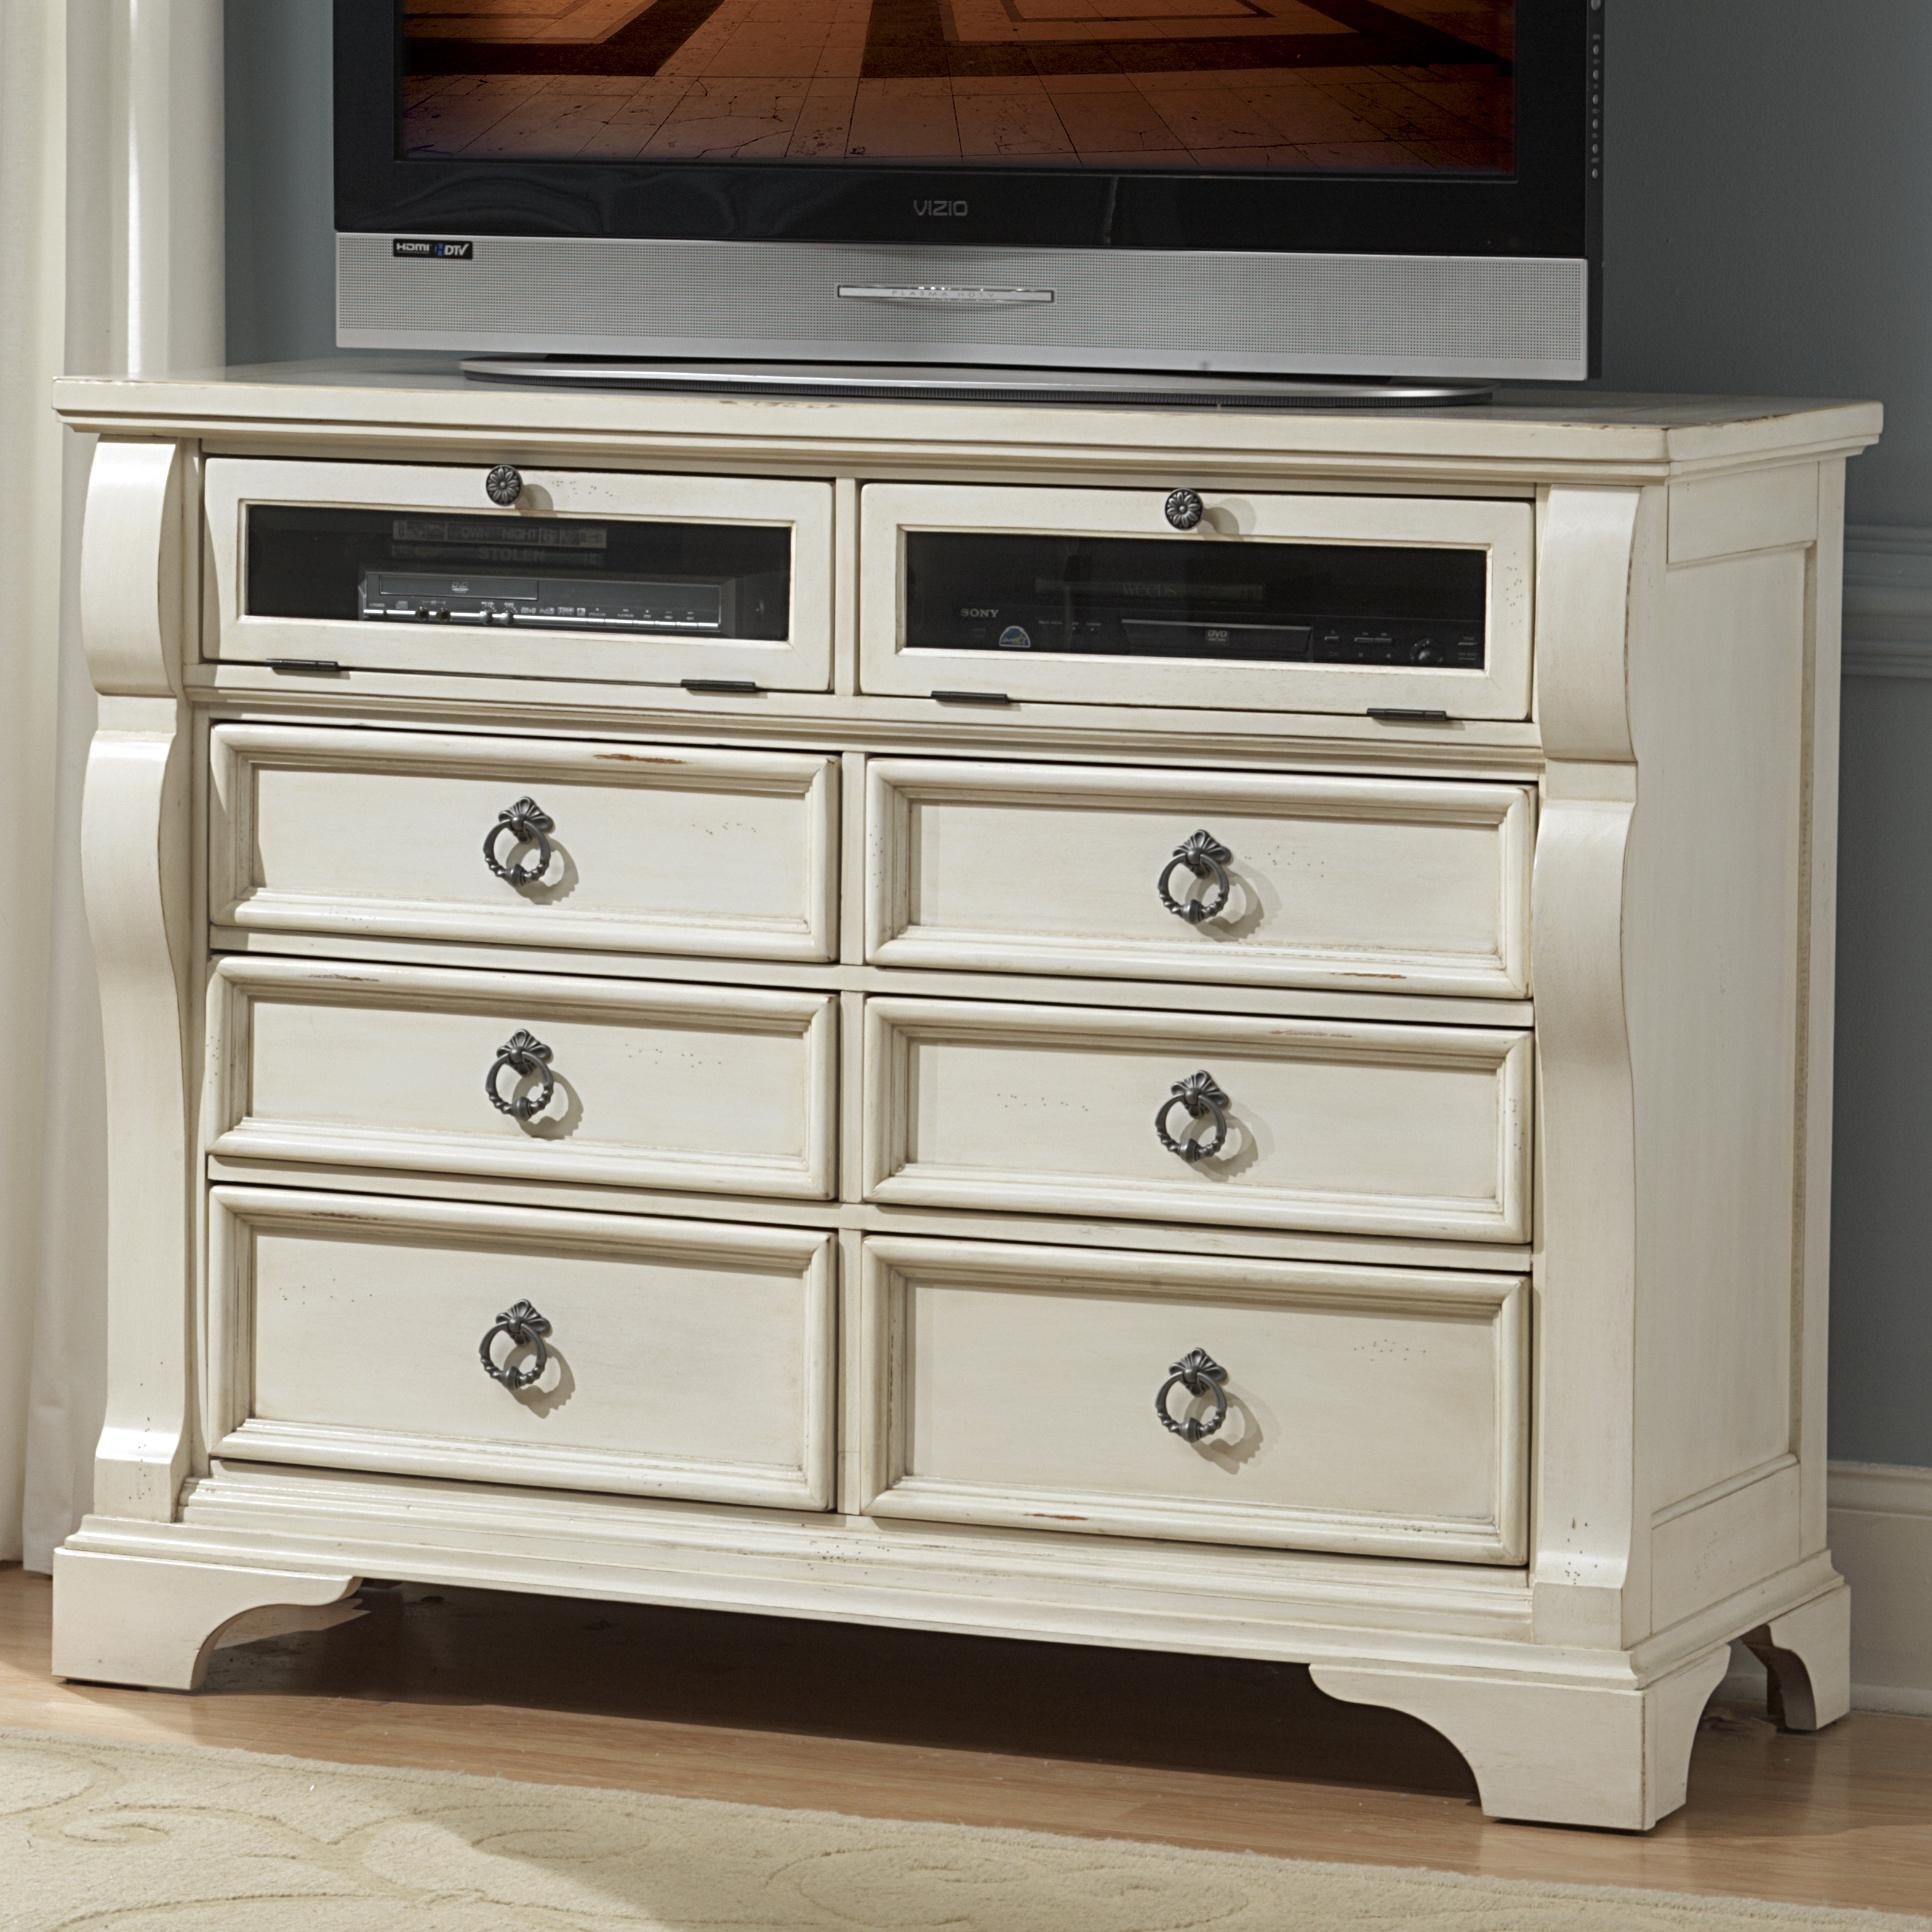 American Woodcrafters Heirloom Entertainment Chest - Item Number: 2910-232